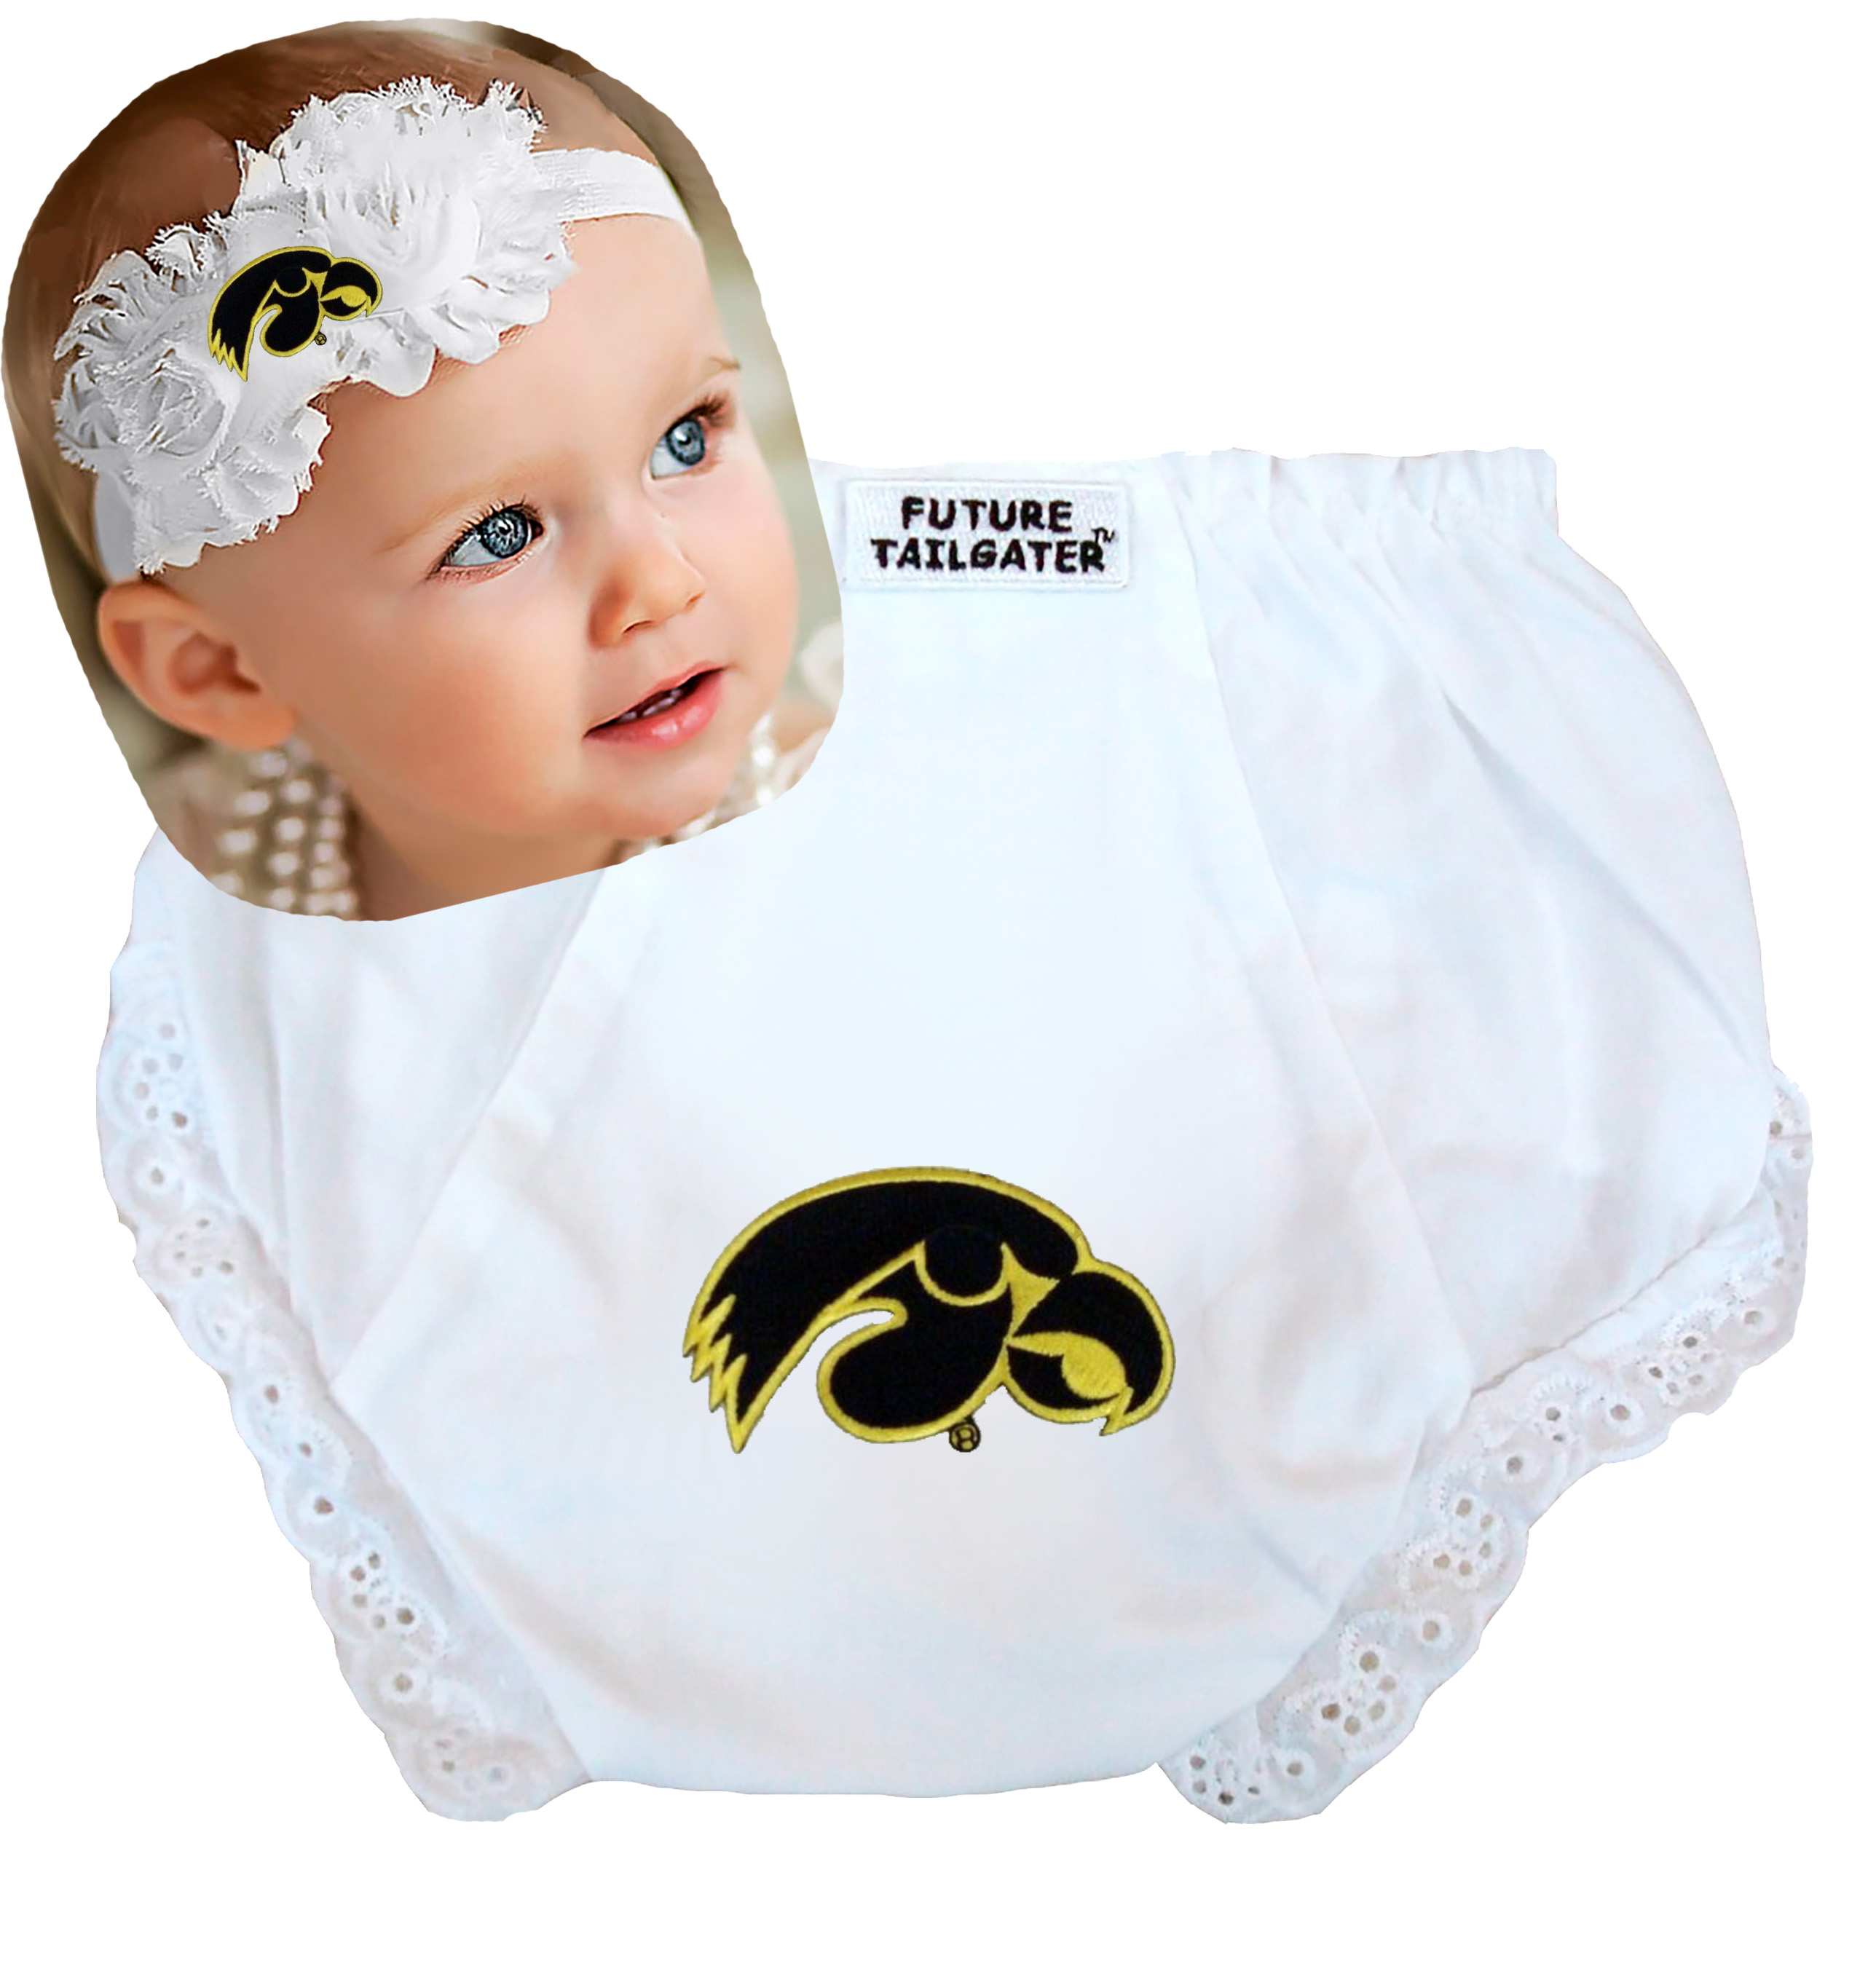 Iowa Hawkeye Top to Bottom Baby Gift Set